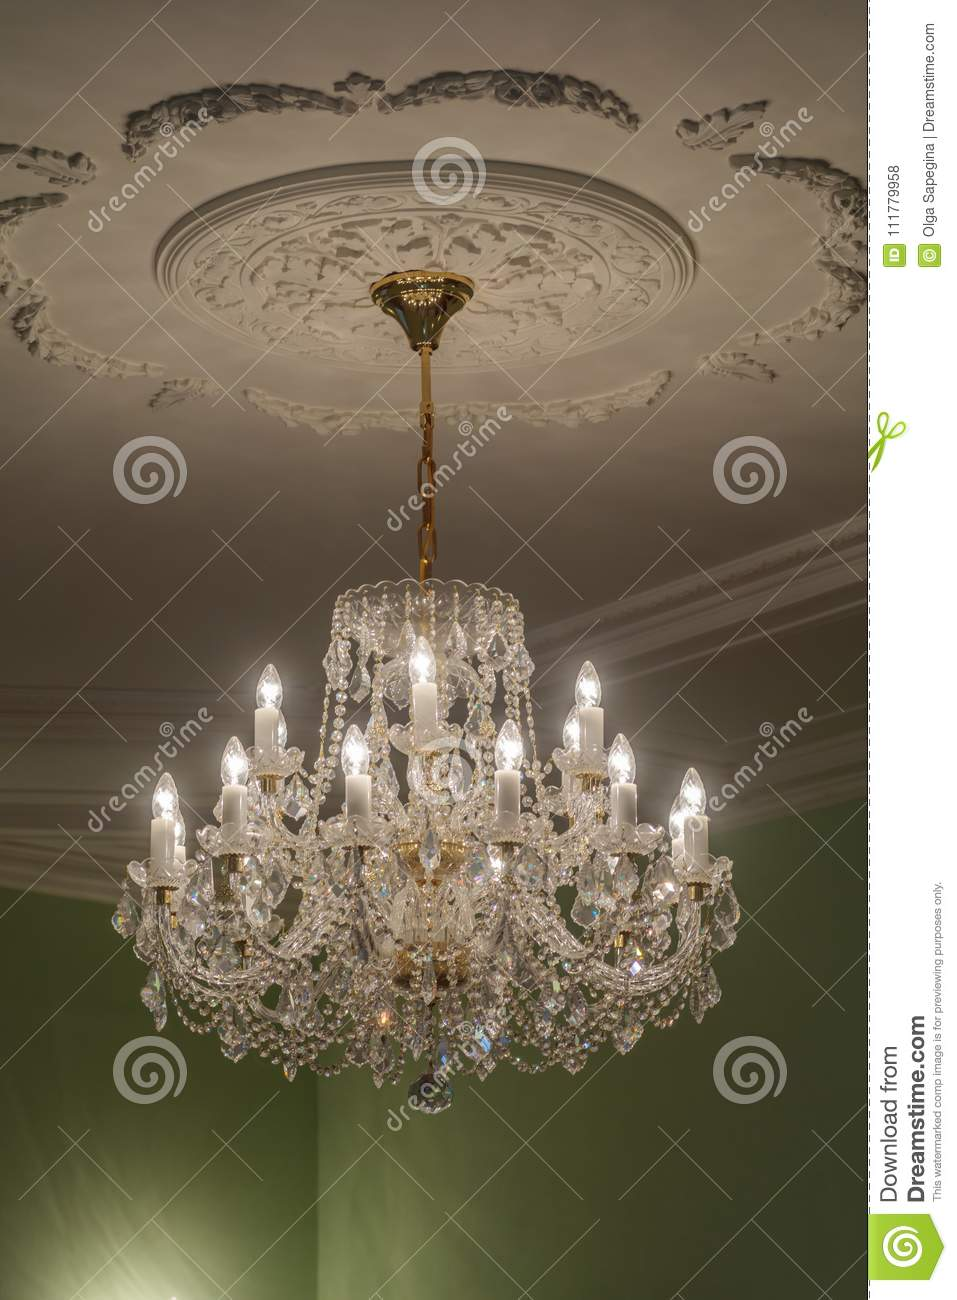 Huge chandelier closeup